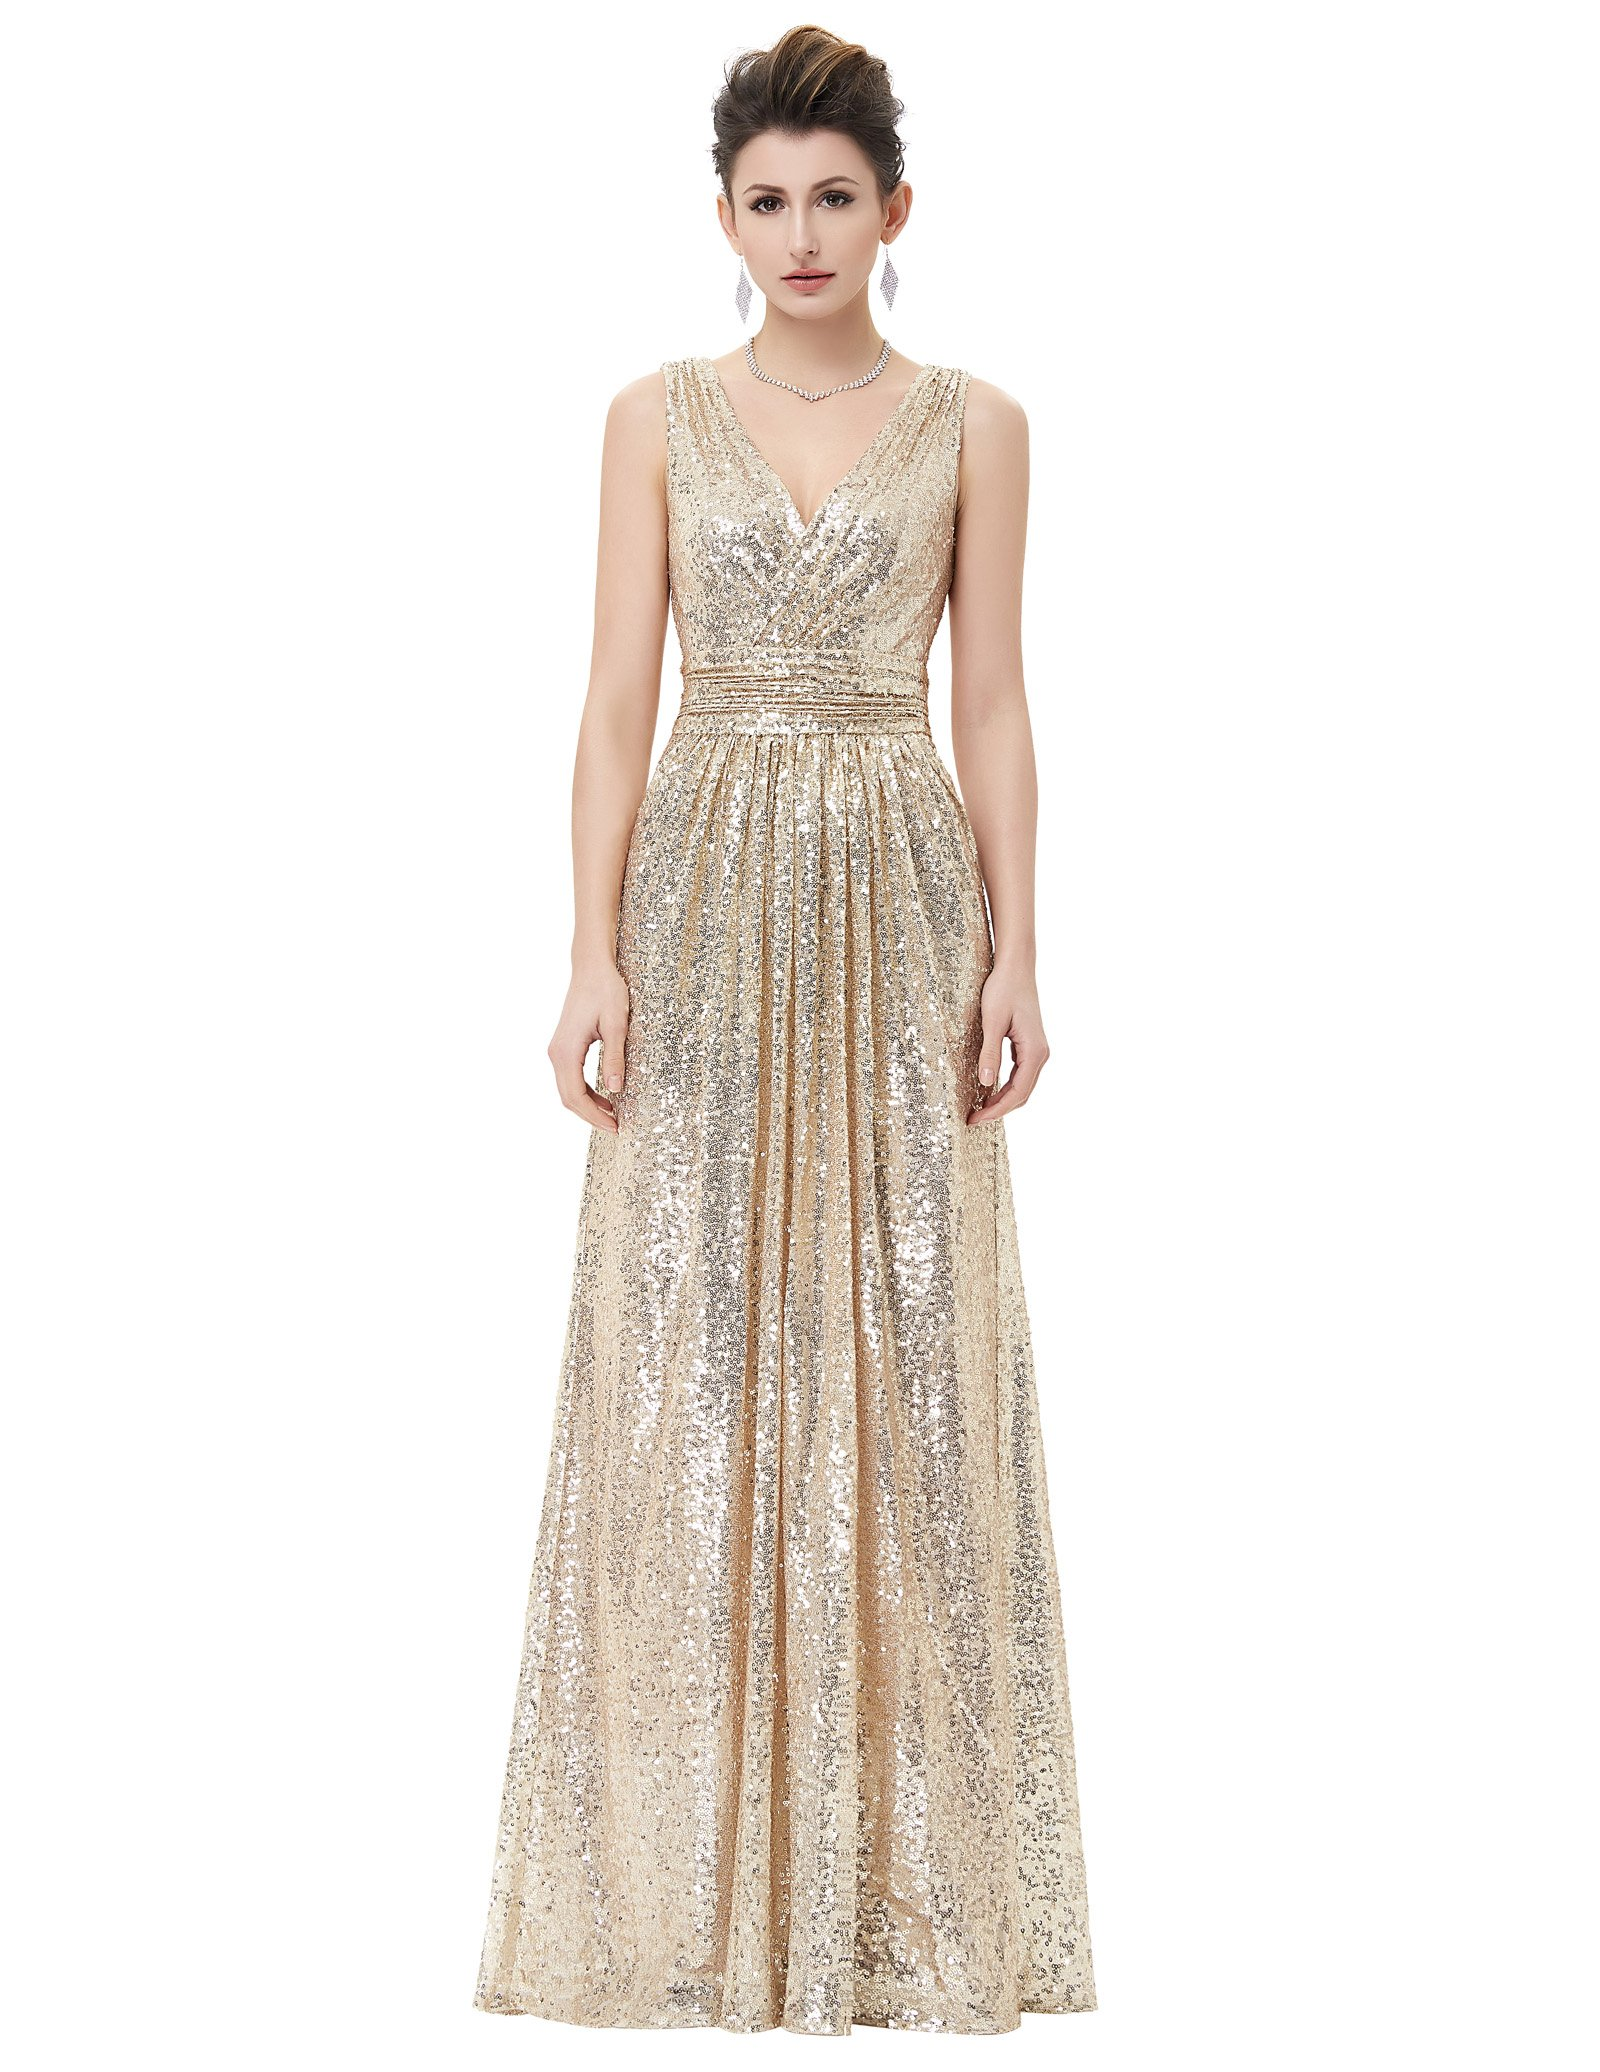 Kate Kasin Plus Size Long Sequined Bridesmaid Dress Women Evening Party V-Neck Gold USA18 KK199-1